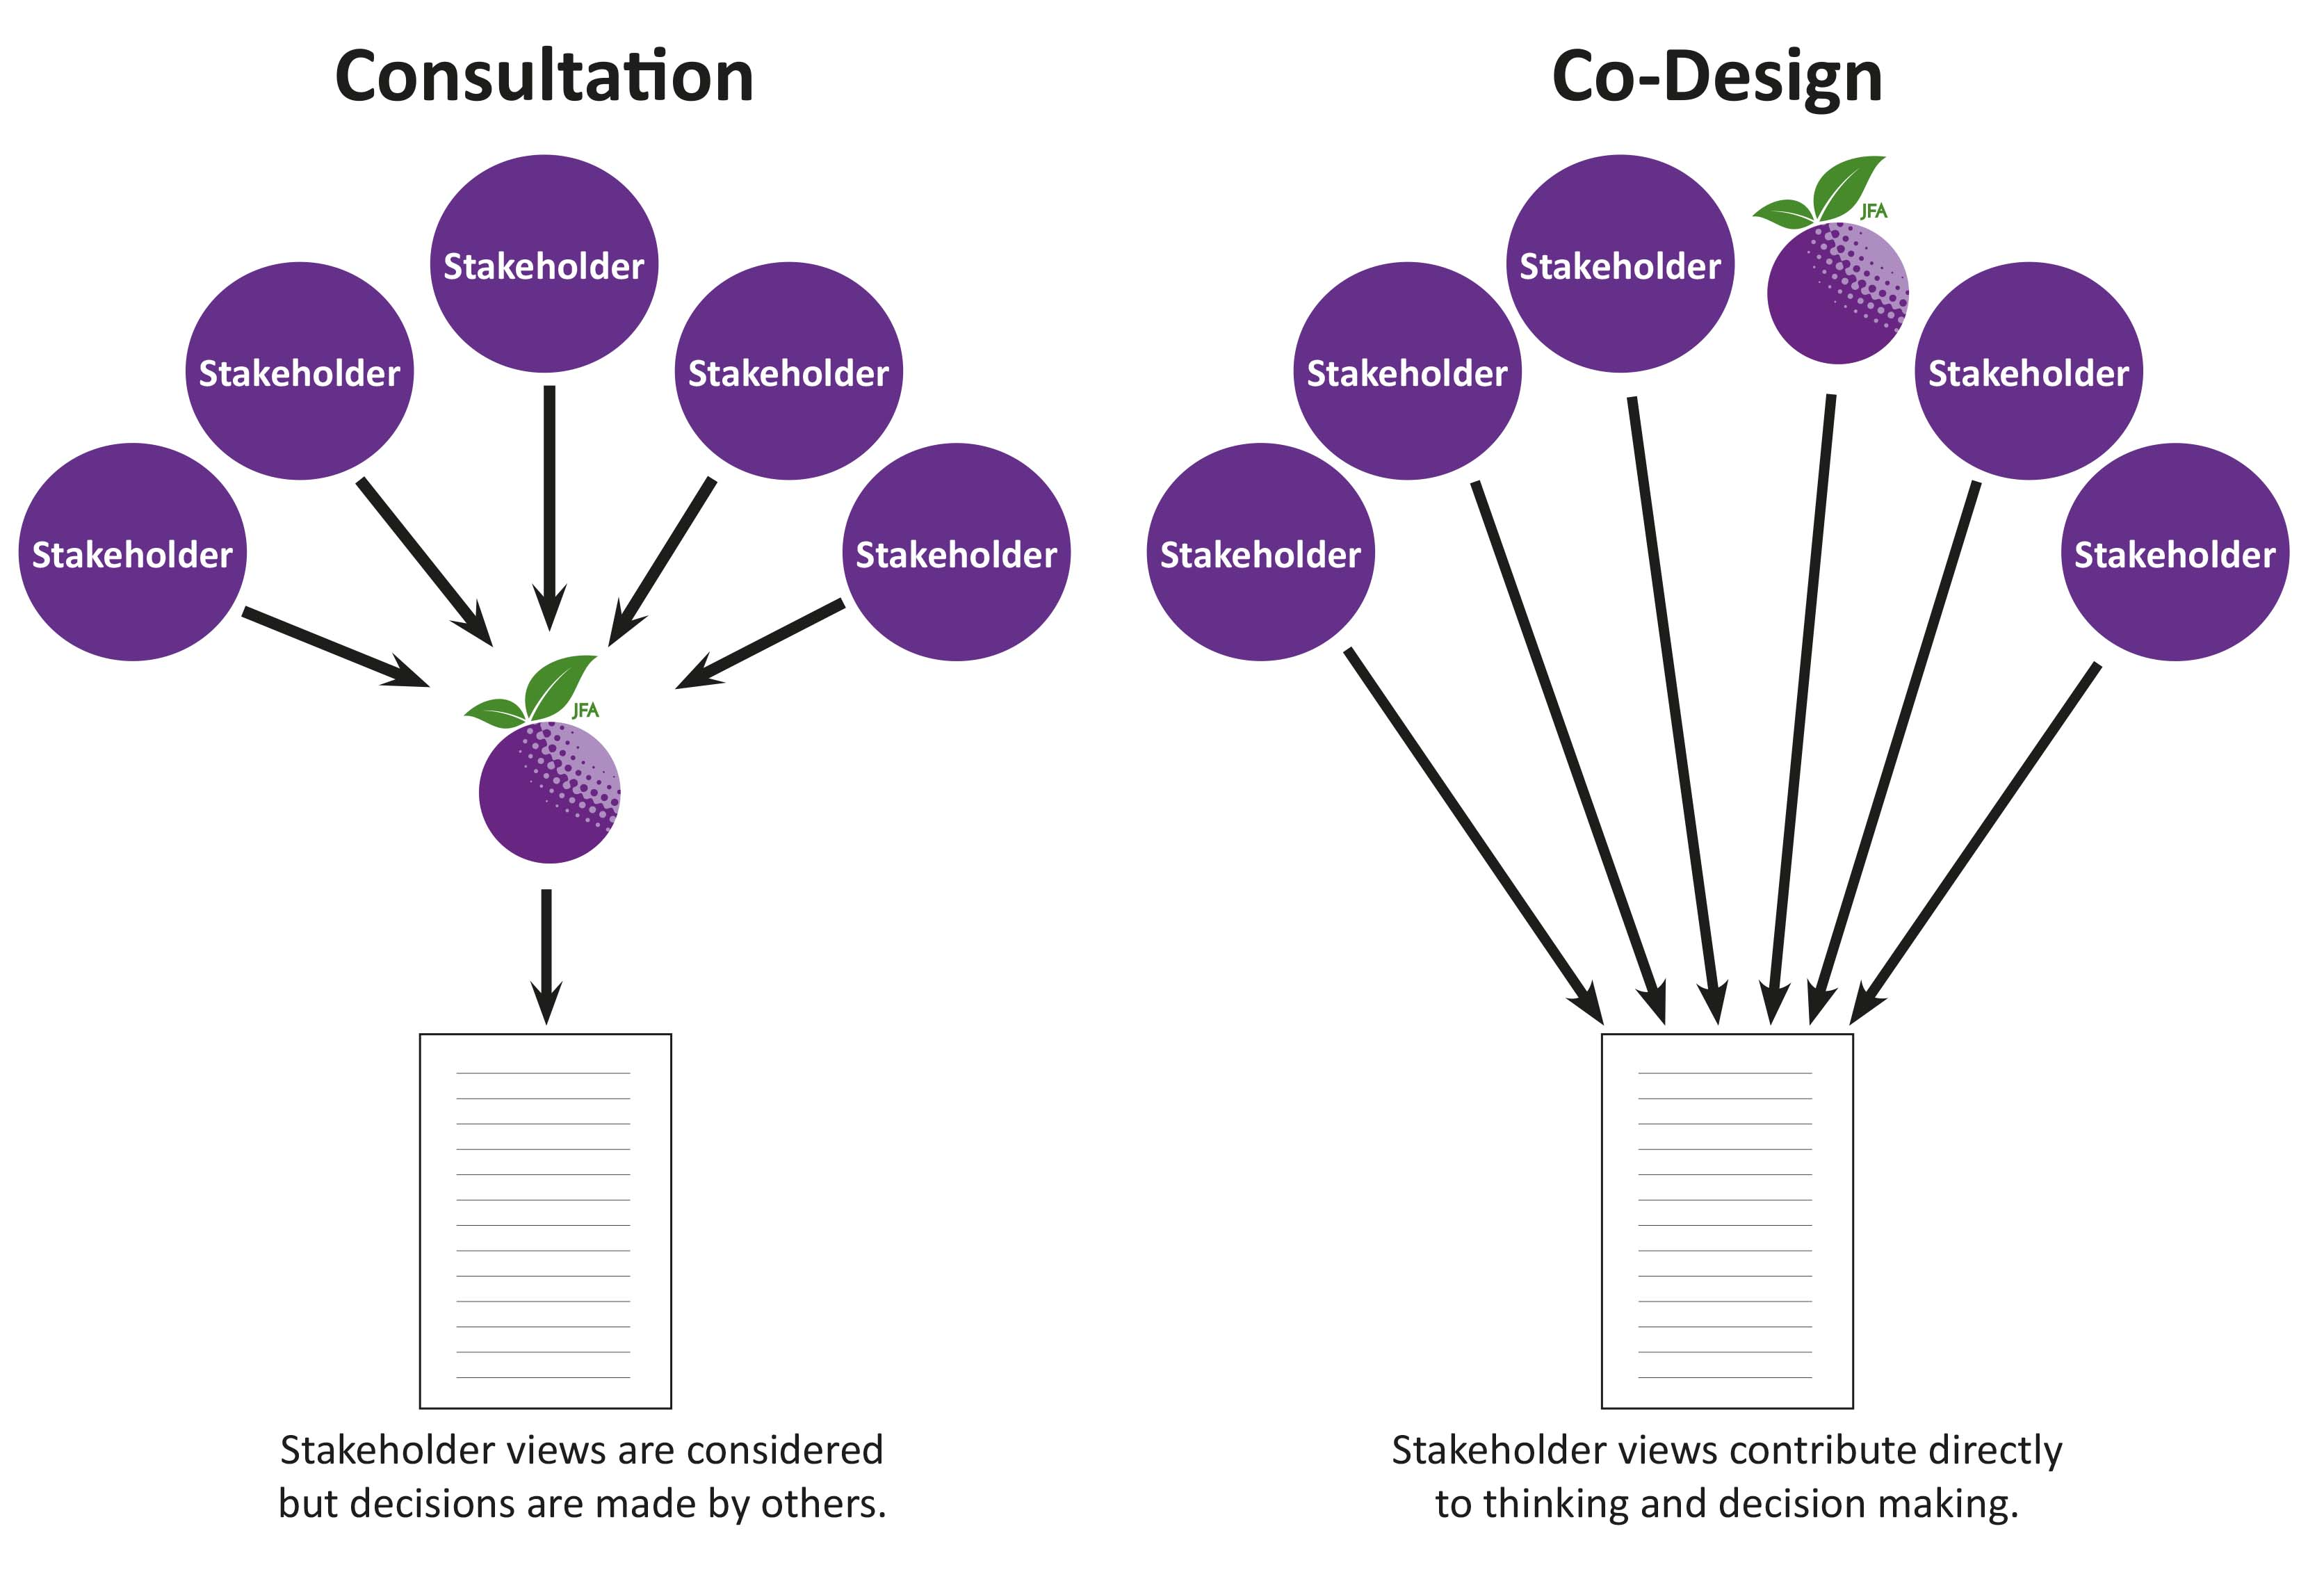 Image is diagram of co-design group